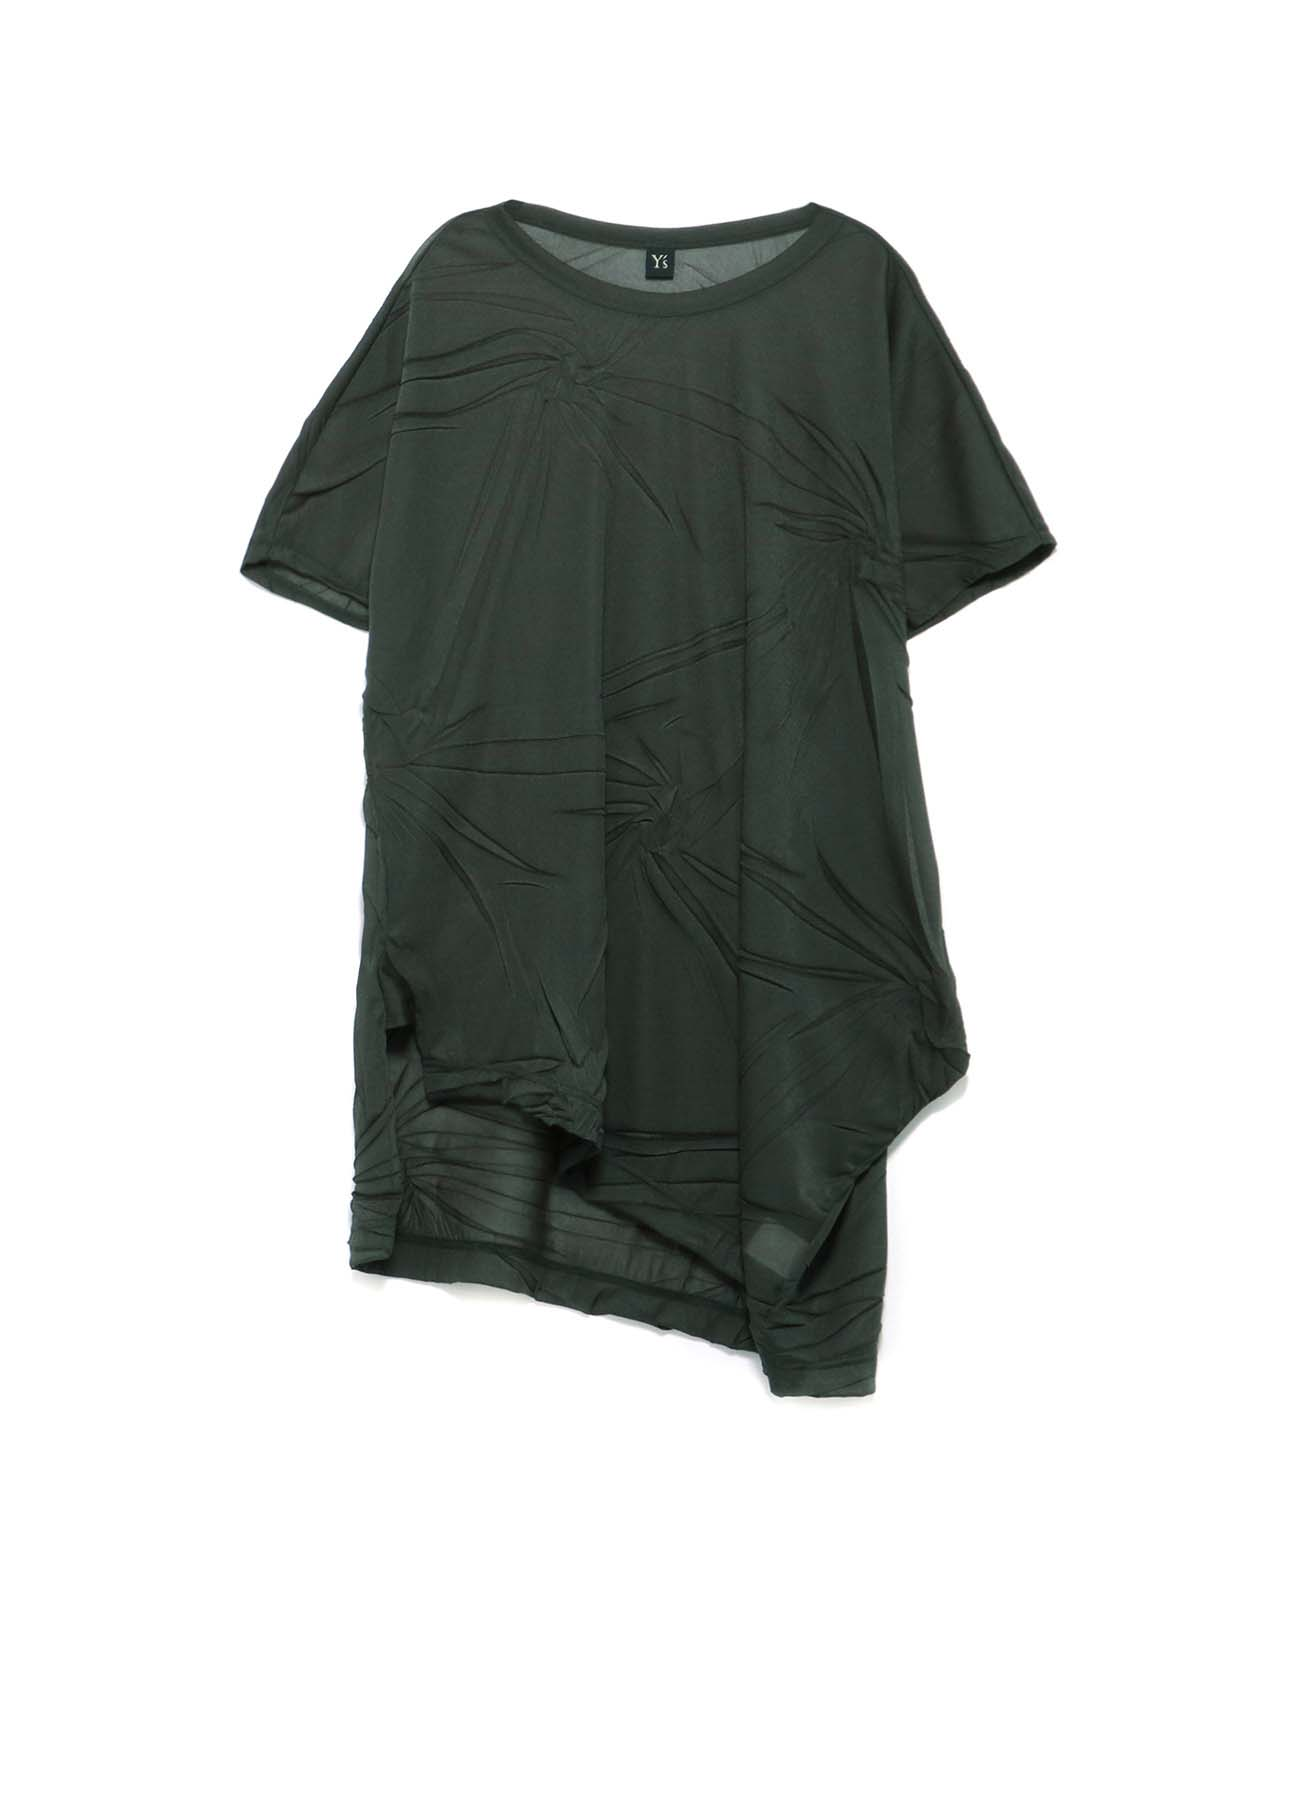 RANDOM WRINKLE PLEATS UNBALANCE T-SHIRT